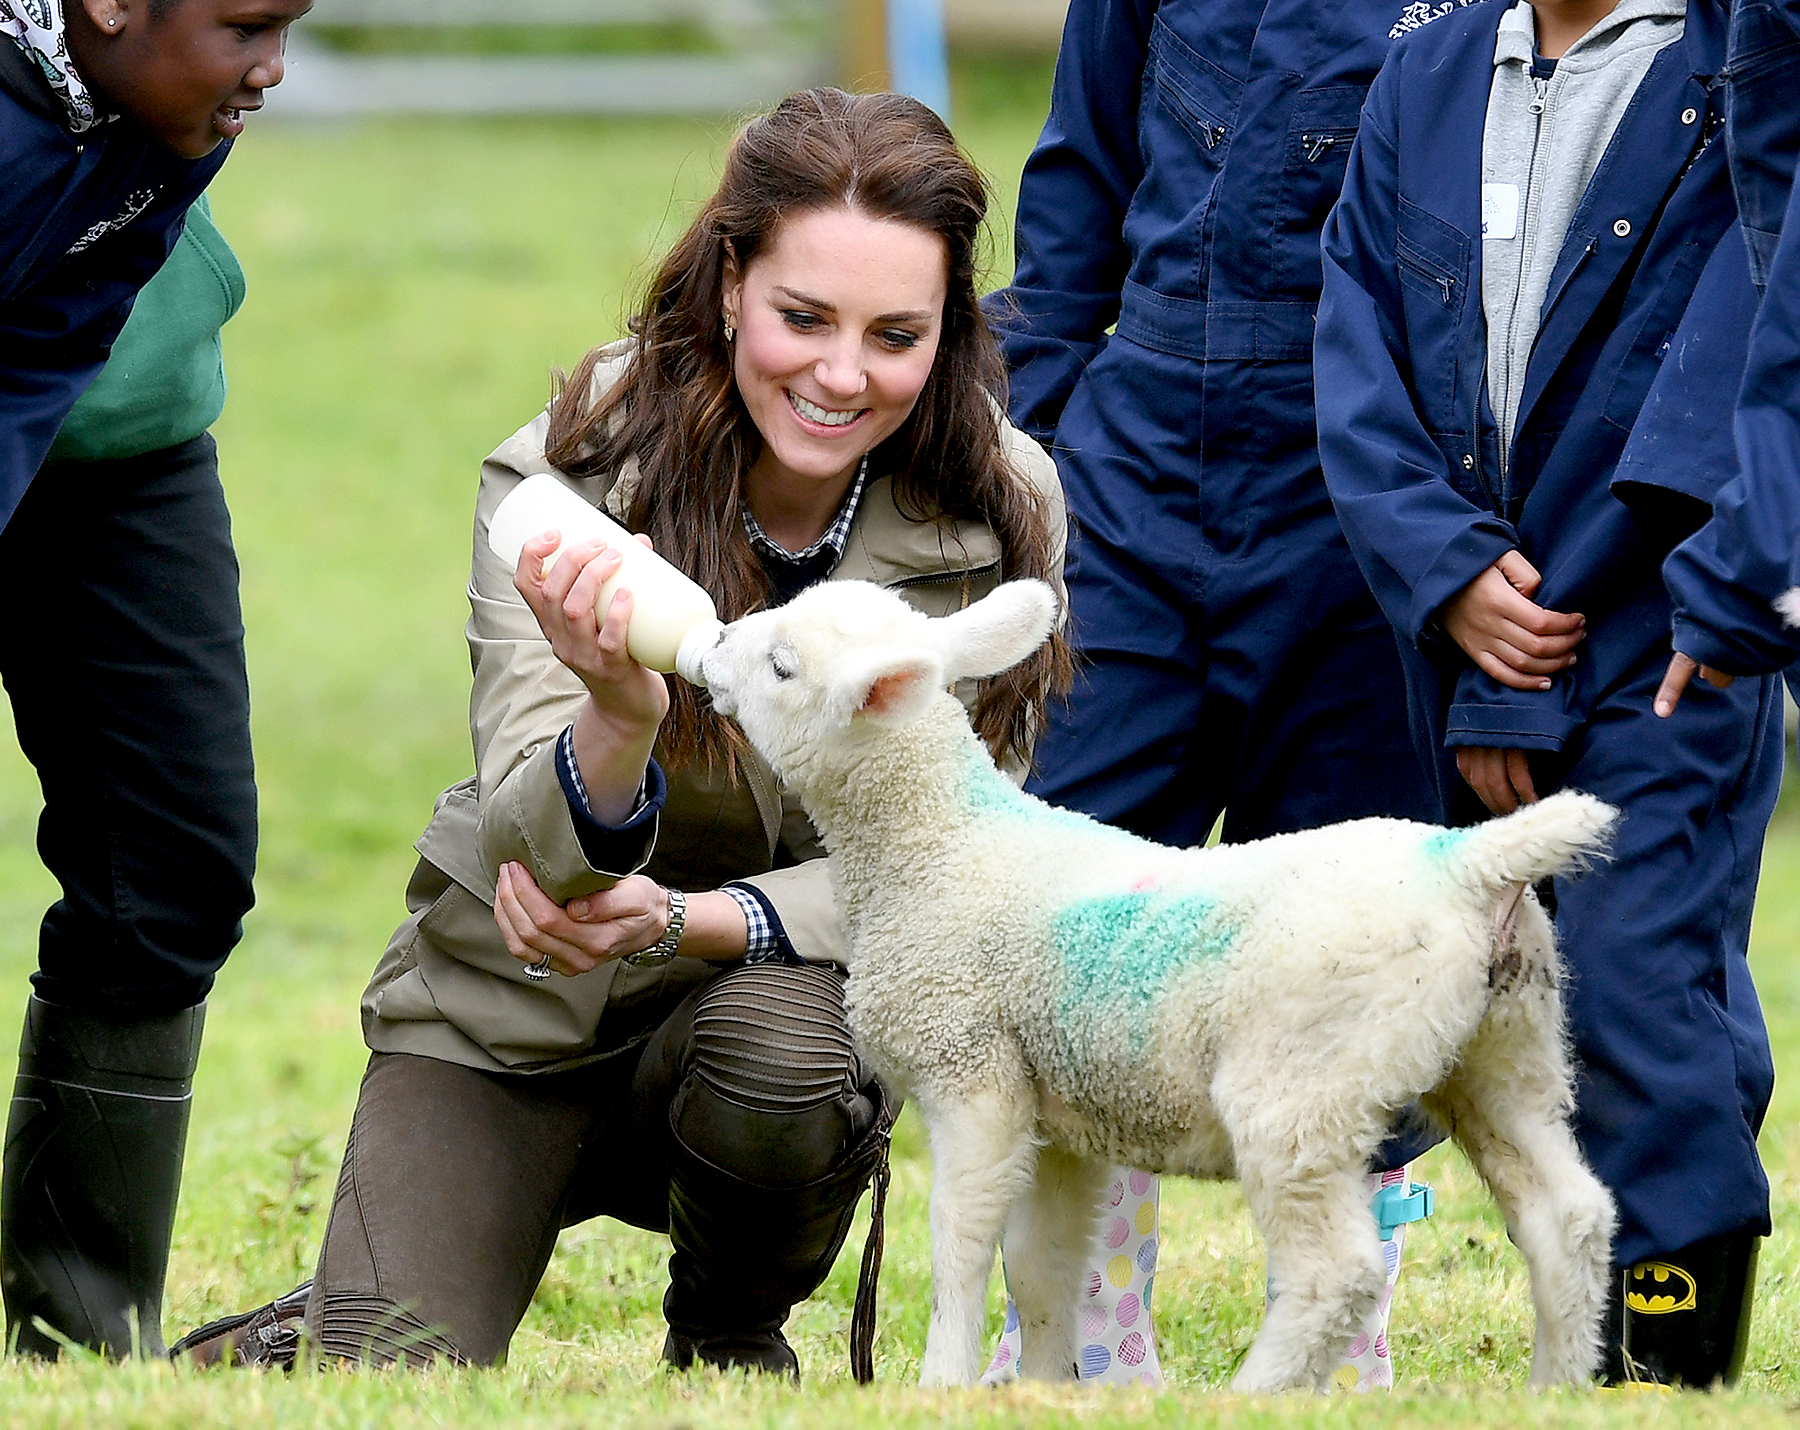 Catherine, Duchess of Cambridge feeds Stinky the lamb during her visit of Farms for City Children on May 3, 2017 in Arlingham, Gloucestershire.